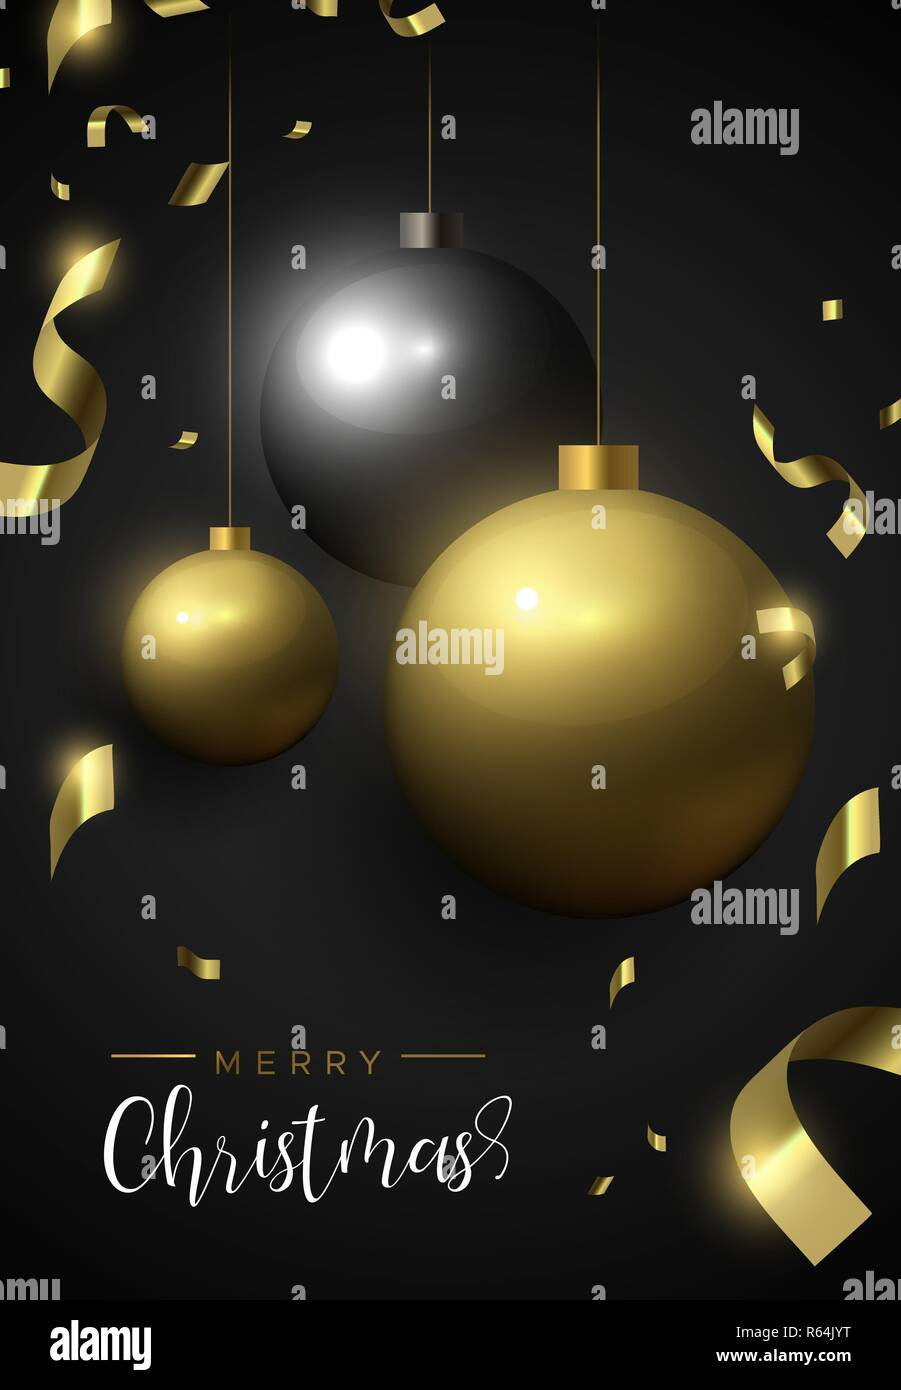 Christmas Invitation Background Gold.Merry Christmas Card Gold And Black Xmas Bauble Ornaments